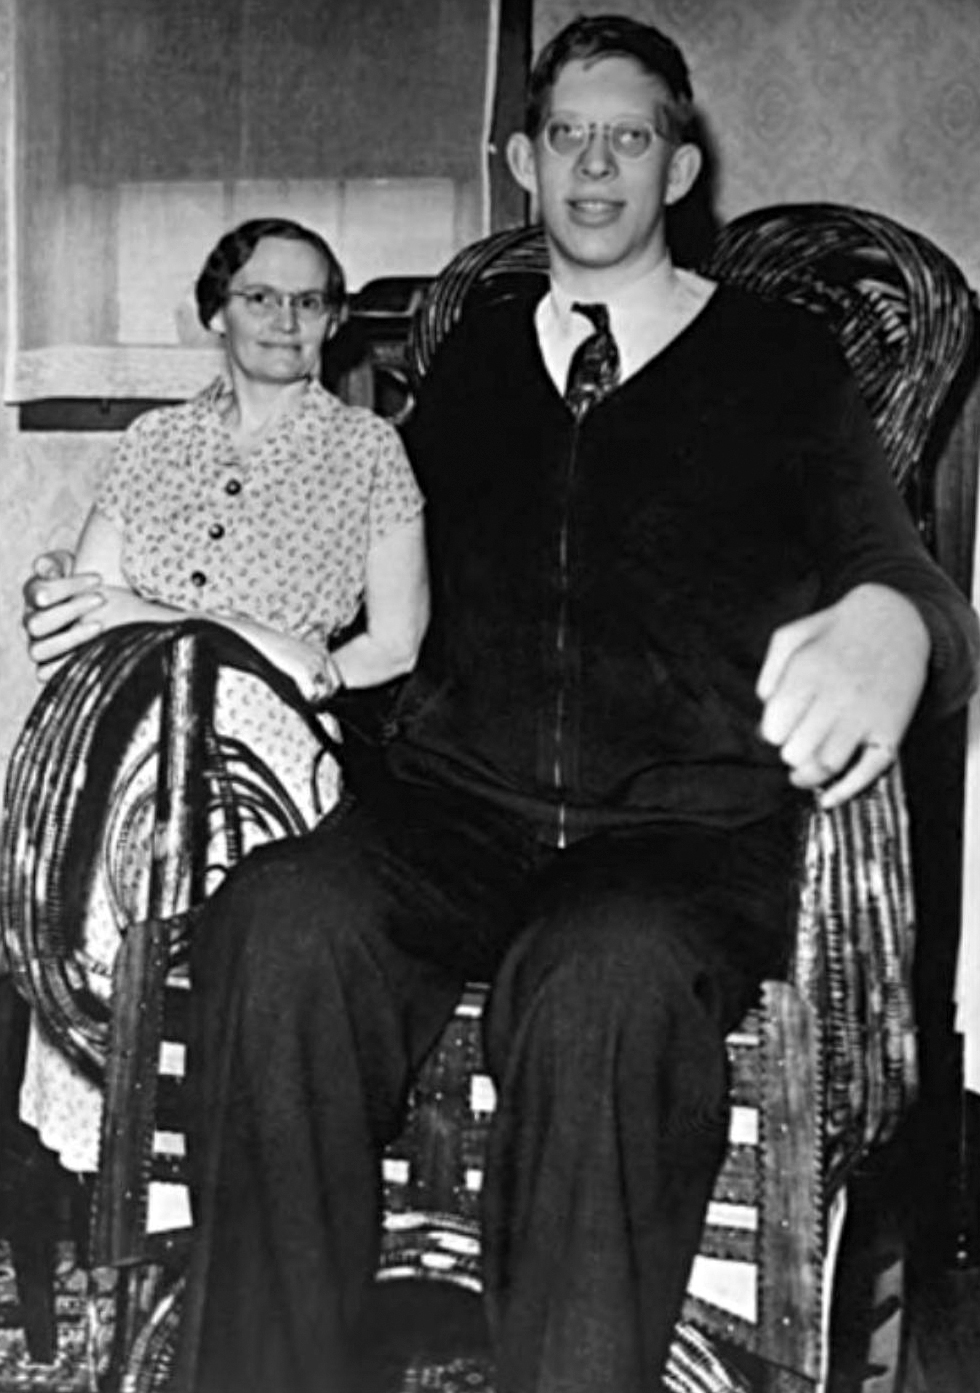 Robert Wadlow Video for Kids